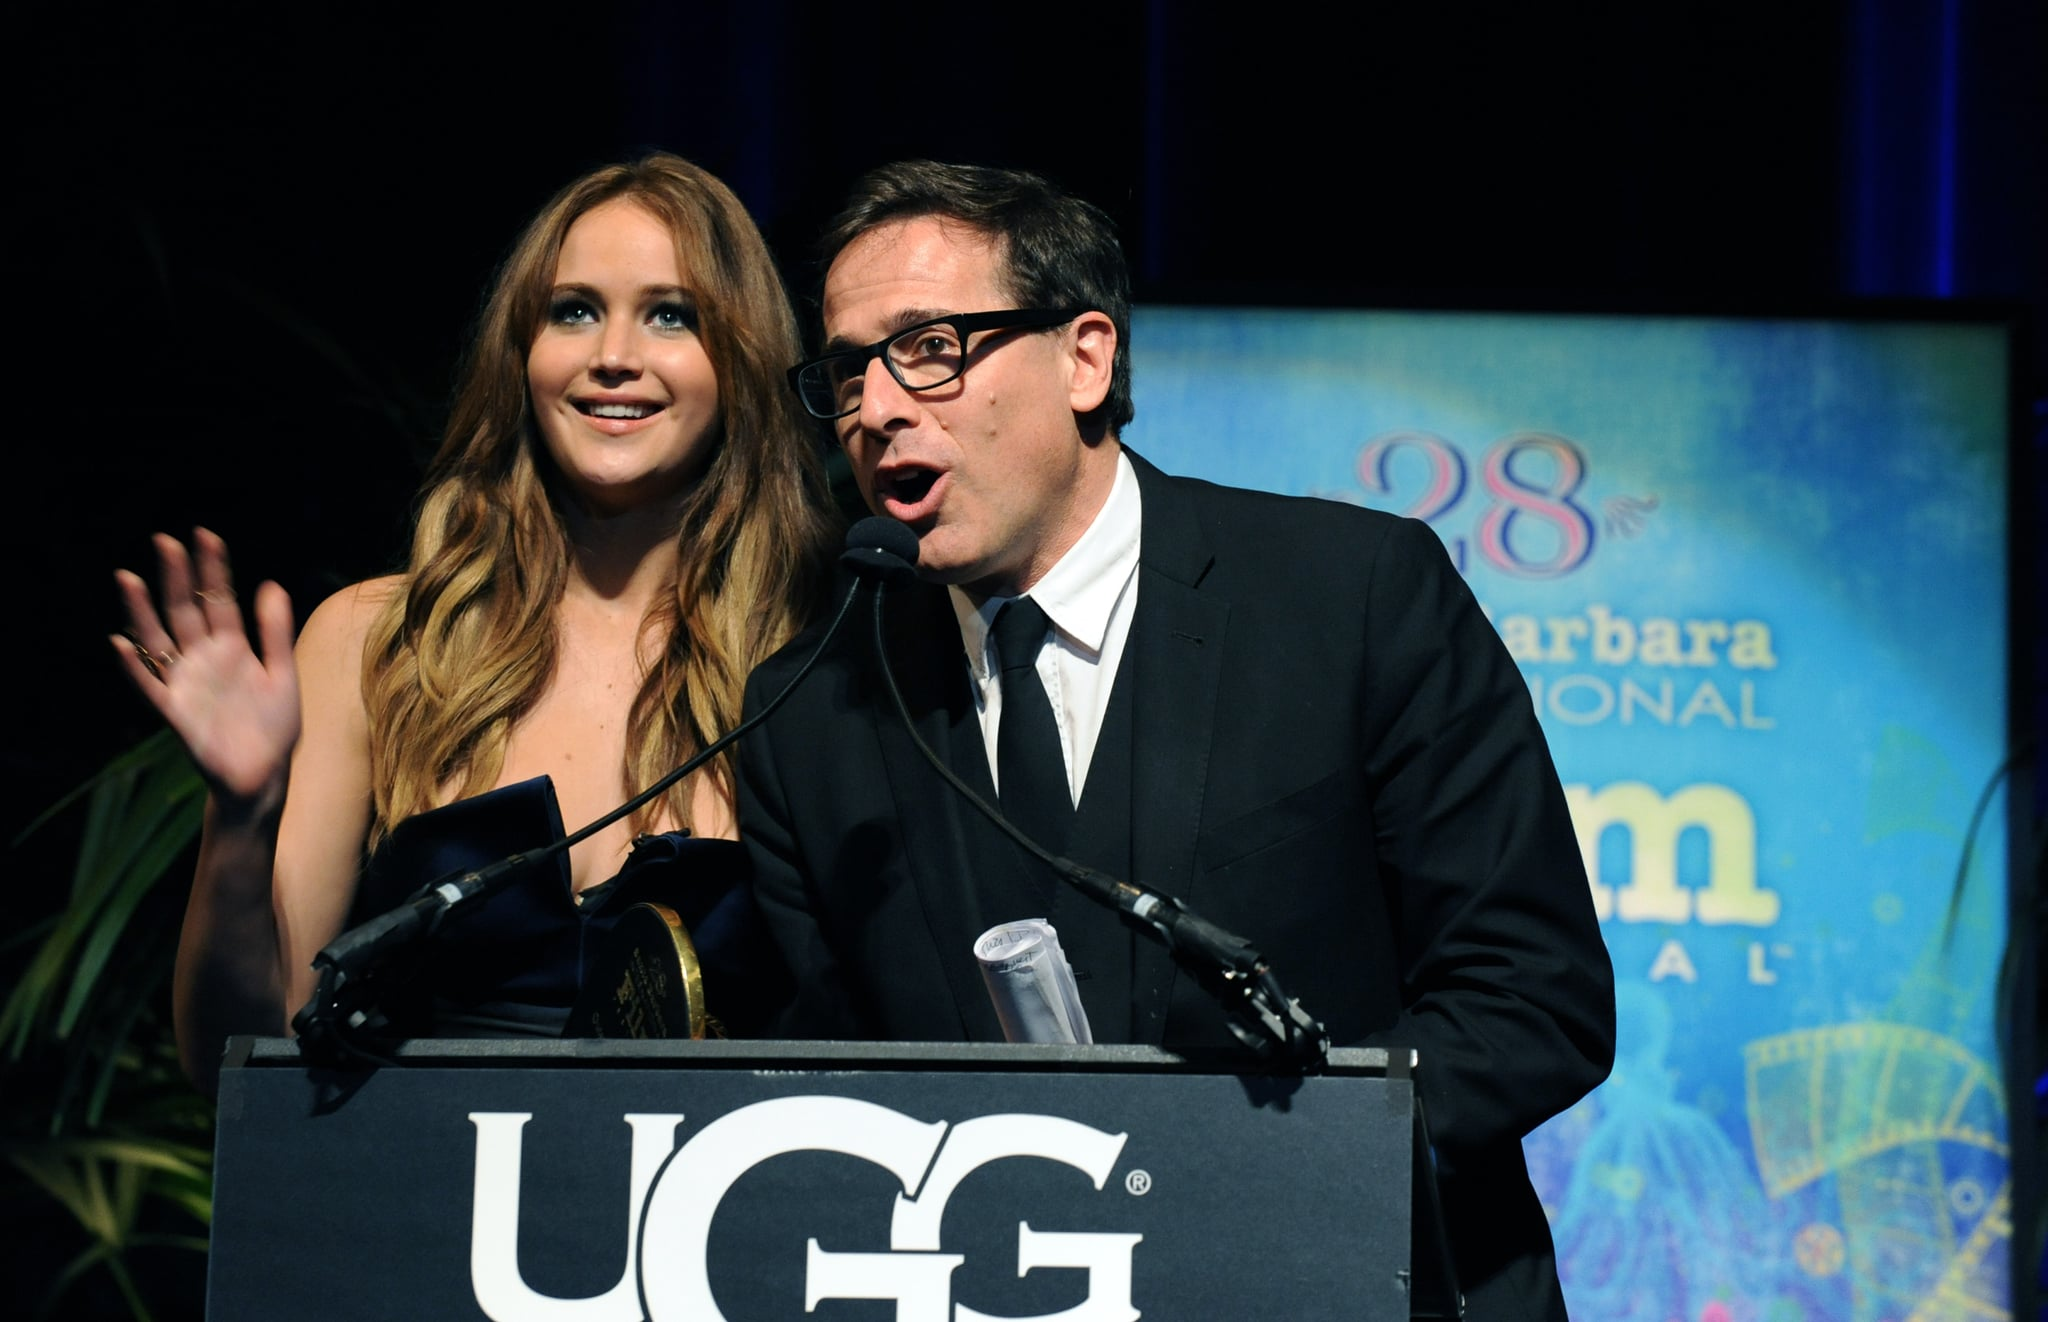 Jennifer Lawrence and David O. Russell took the stage together at the Santa Barbara International Film Festival in February.